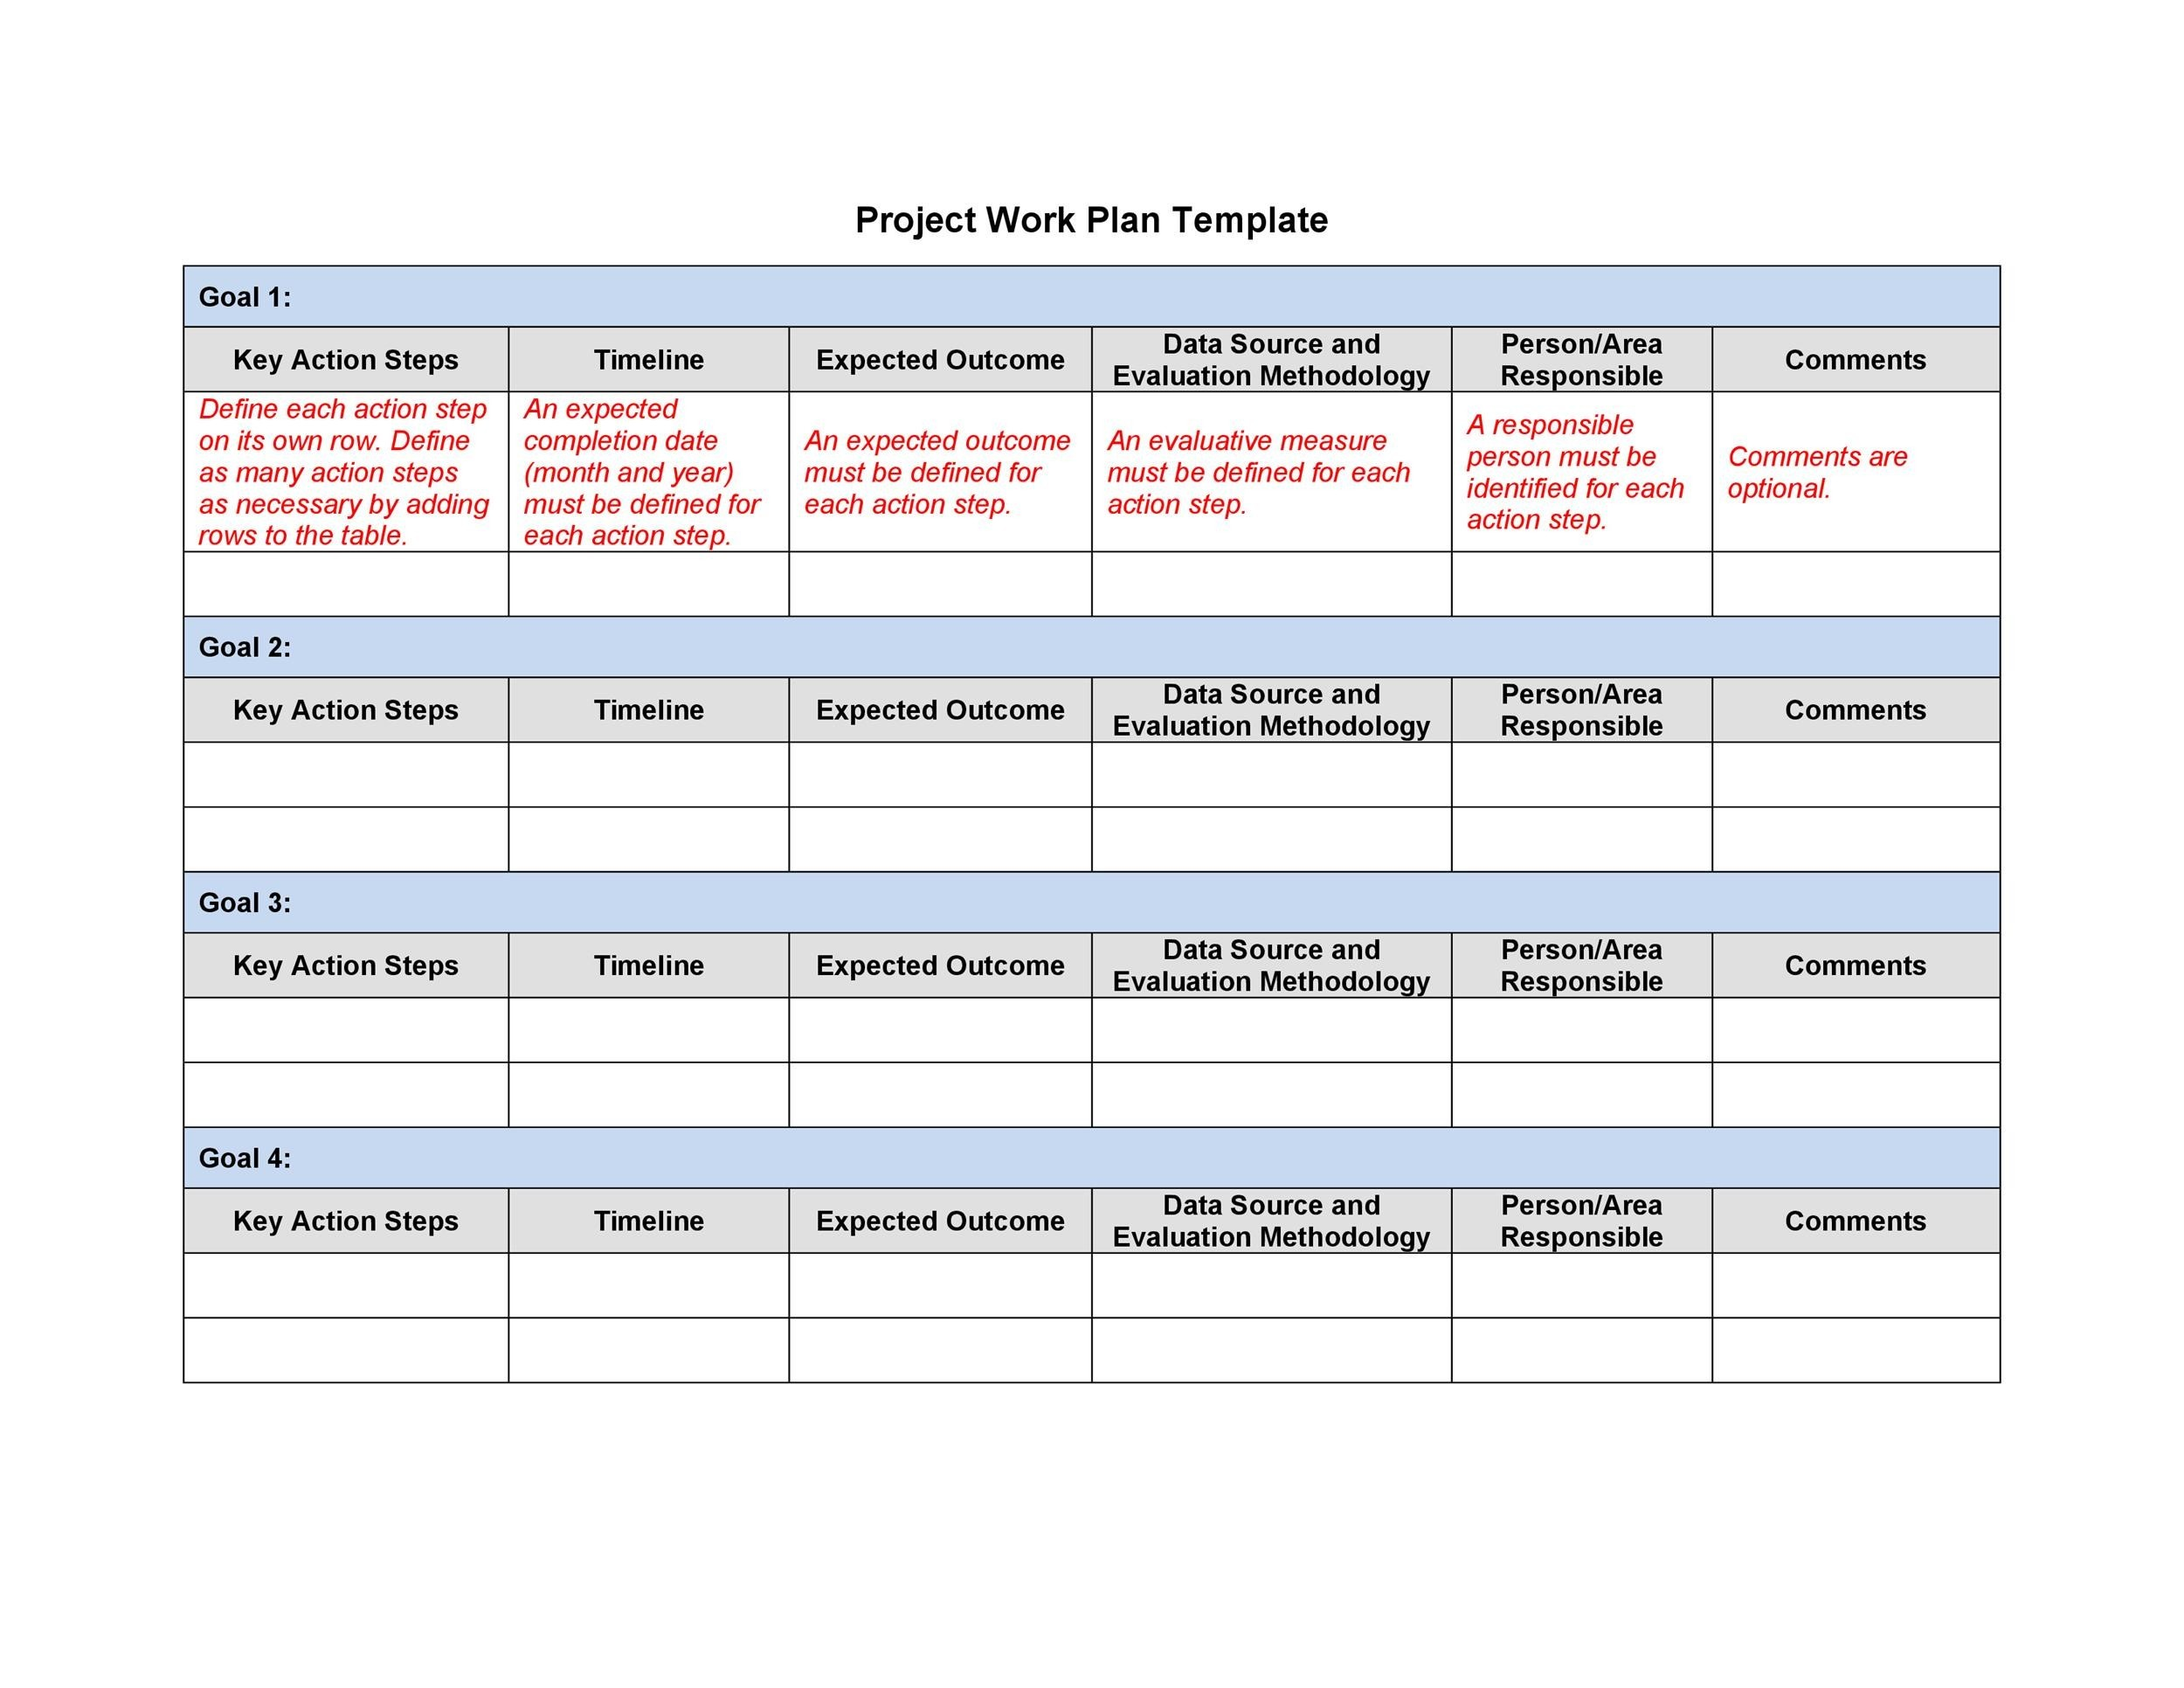 48 Professional Project Plan Templates Excel, Word, PDF - Template Lab